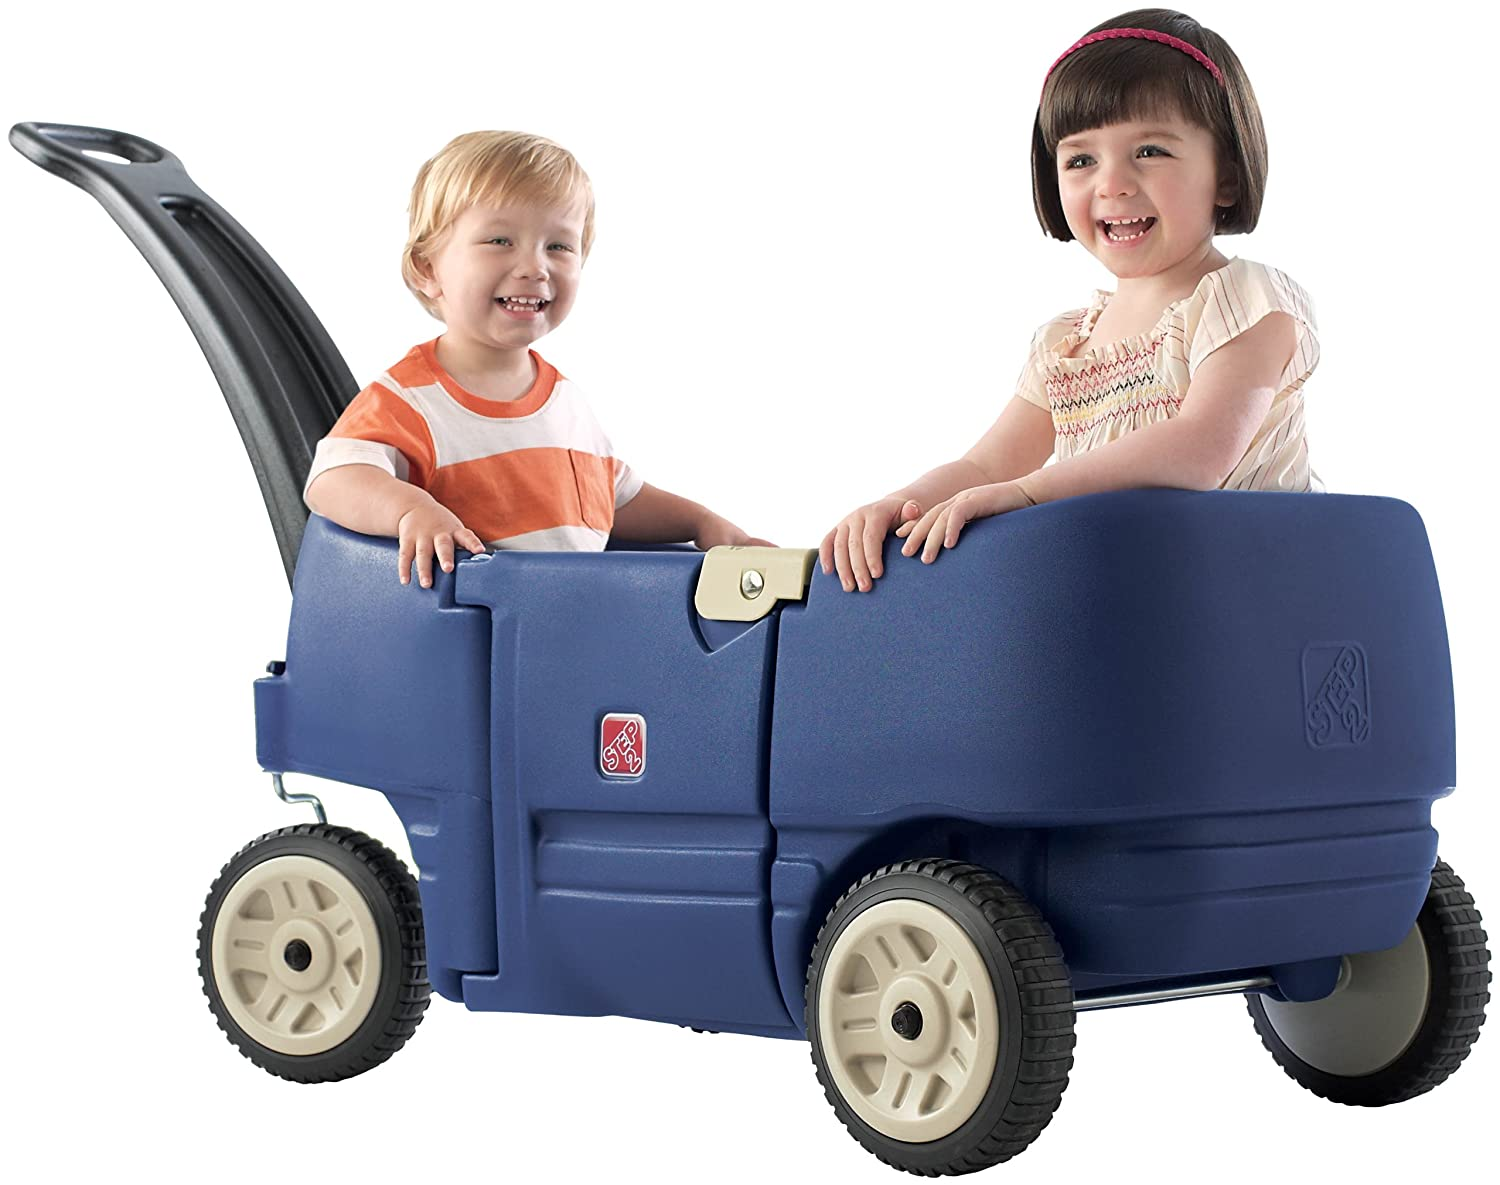 Top 10 Best Wagons for Kids Reviews in 2020 6